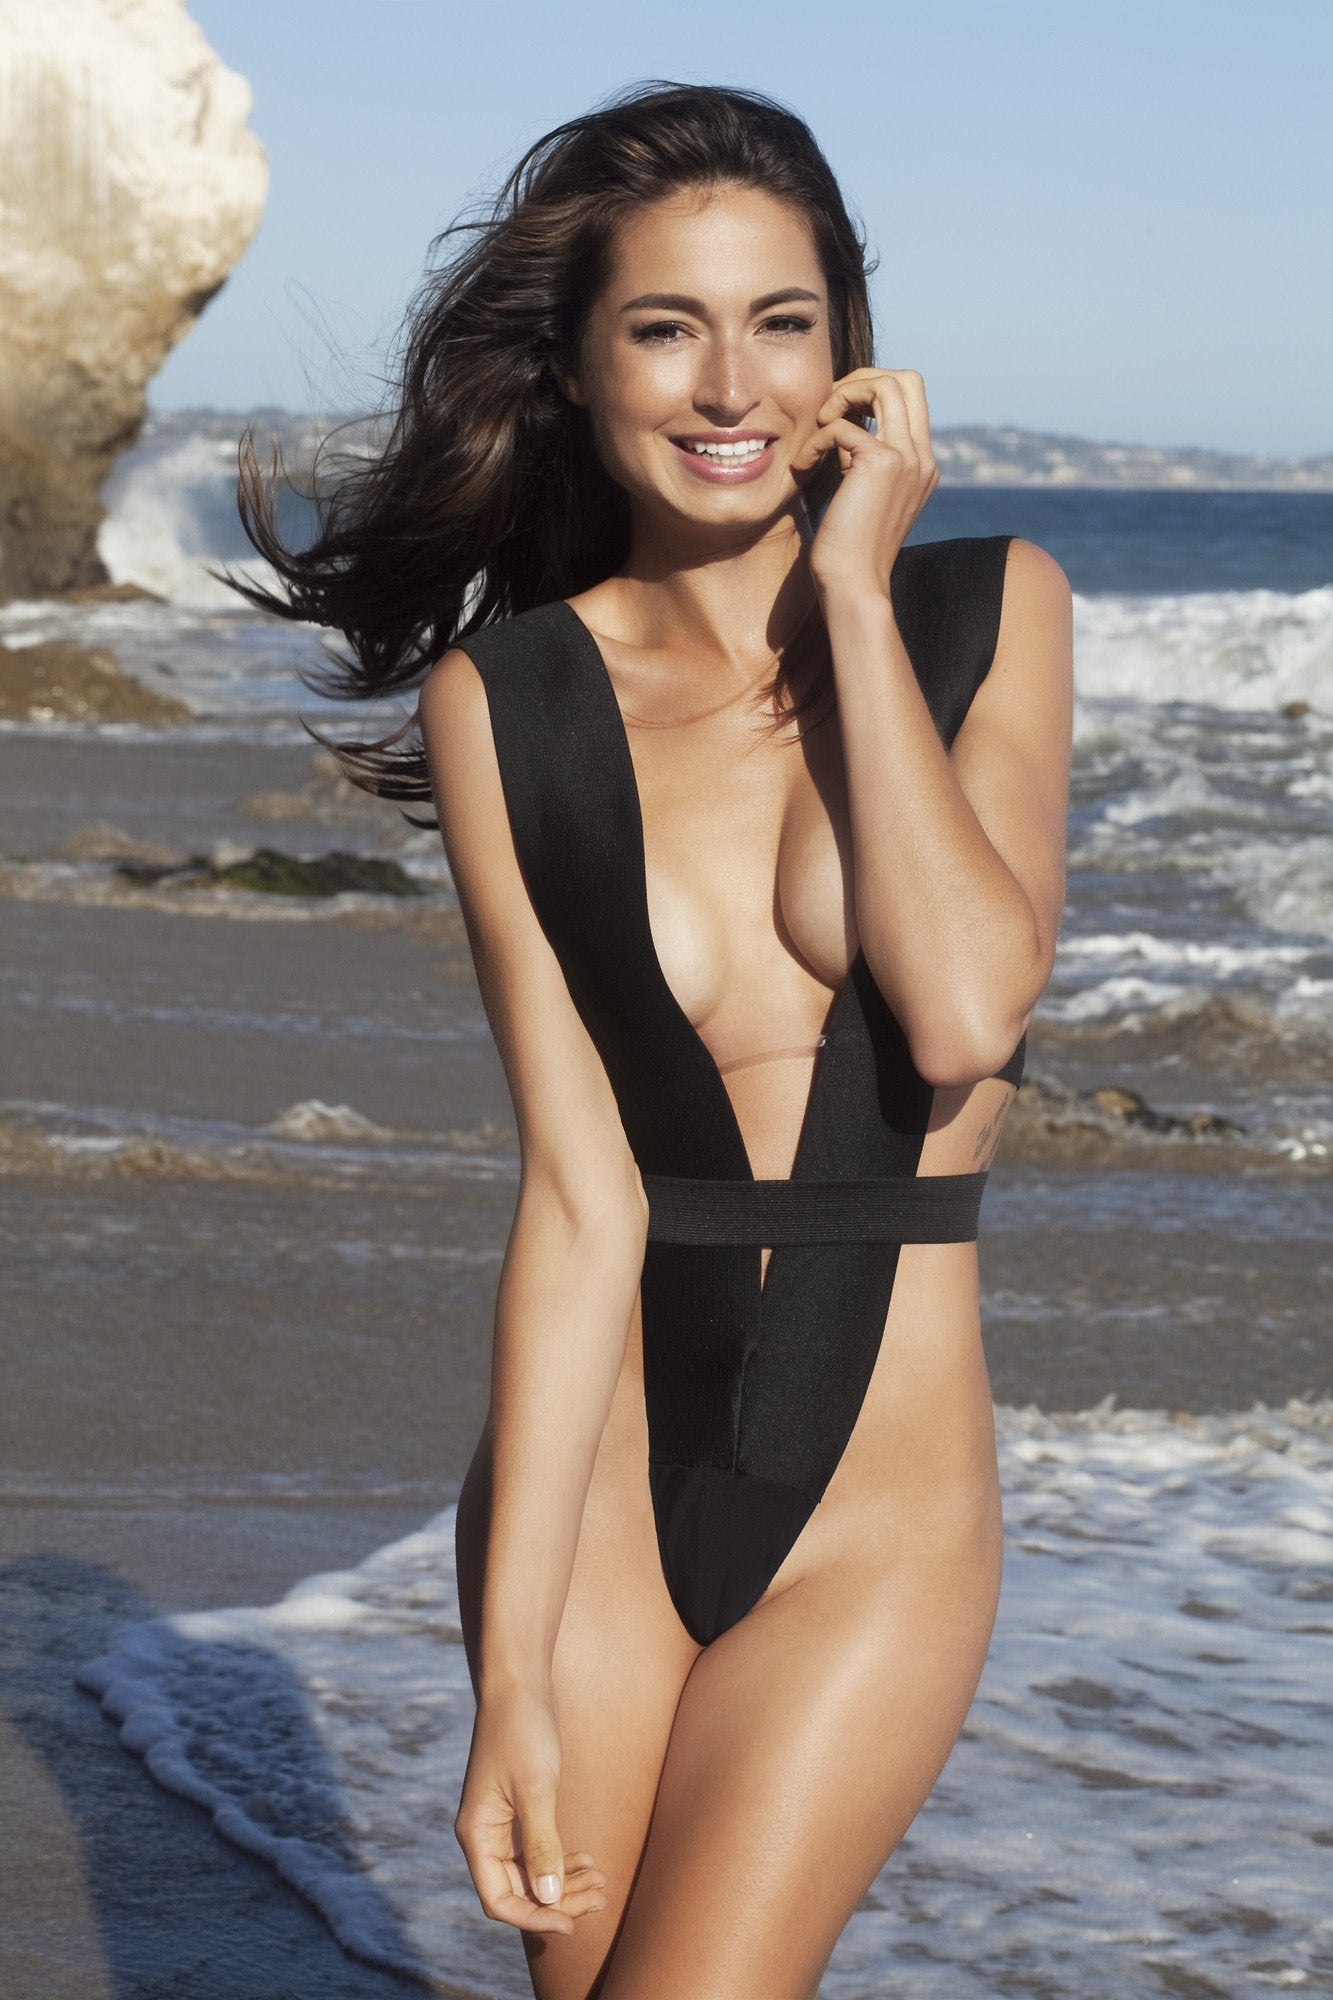 A Style. Bandage V-shape swimsuit suit, one piece - LILYSH